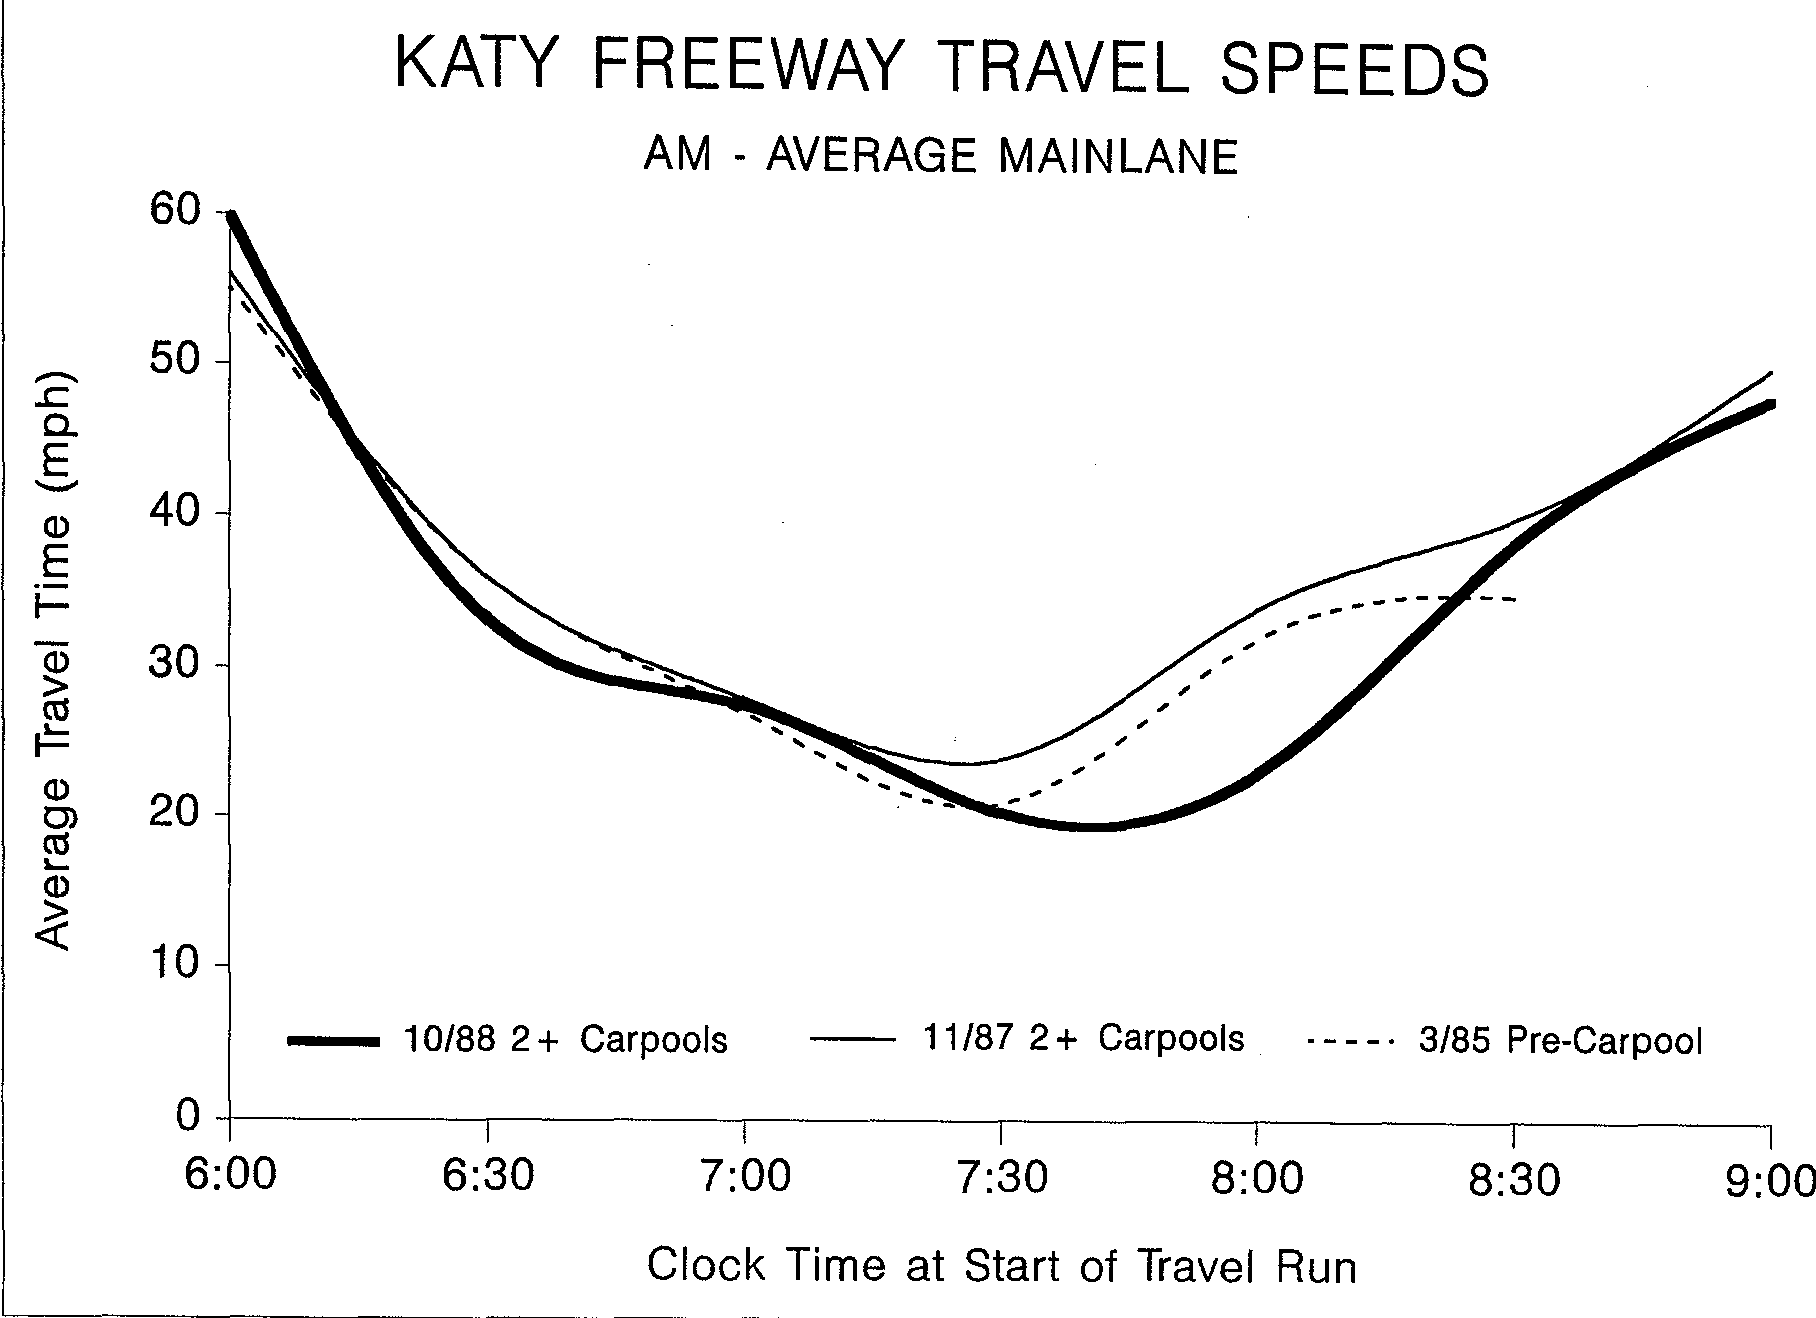 PDF] THE IMPACTS OF CARPOOL UTILIZATION ON THE KATY FREEWAY